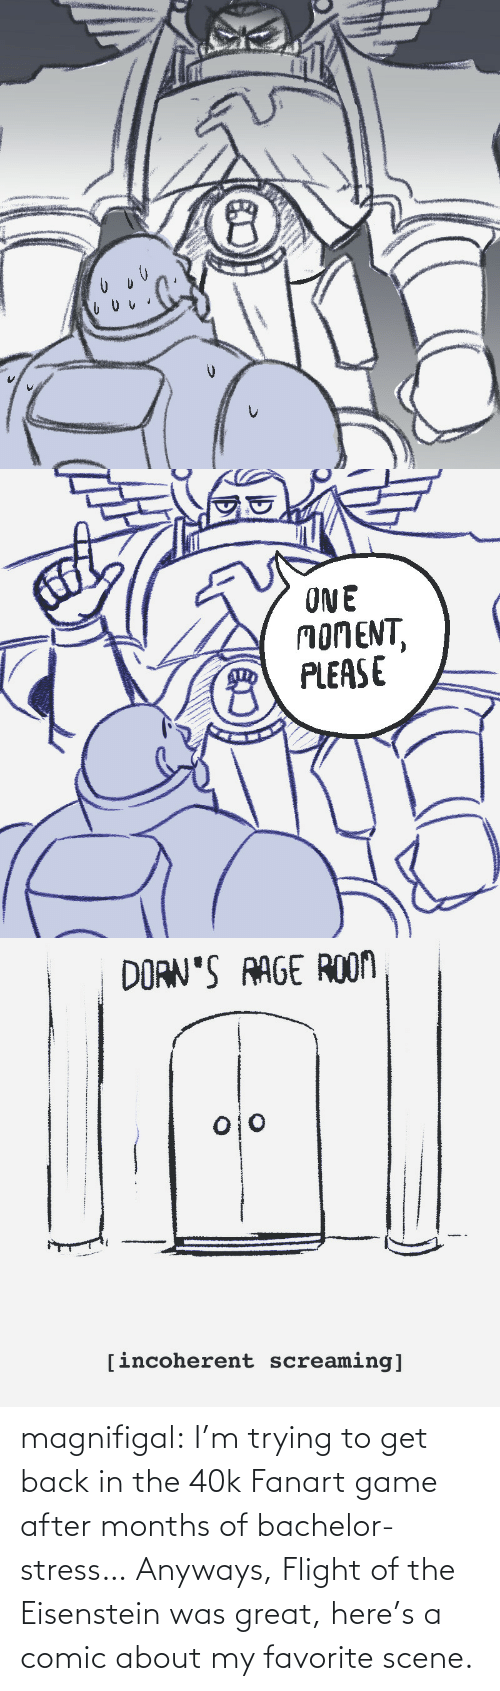 40k: magnifigal:  I'm trying to get back in the 40k Fanart game after months of bachelor-stress… Anyways, Flight of the Eisenstein was great, here's a comic about my favorite scene.